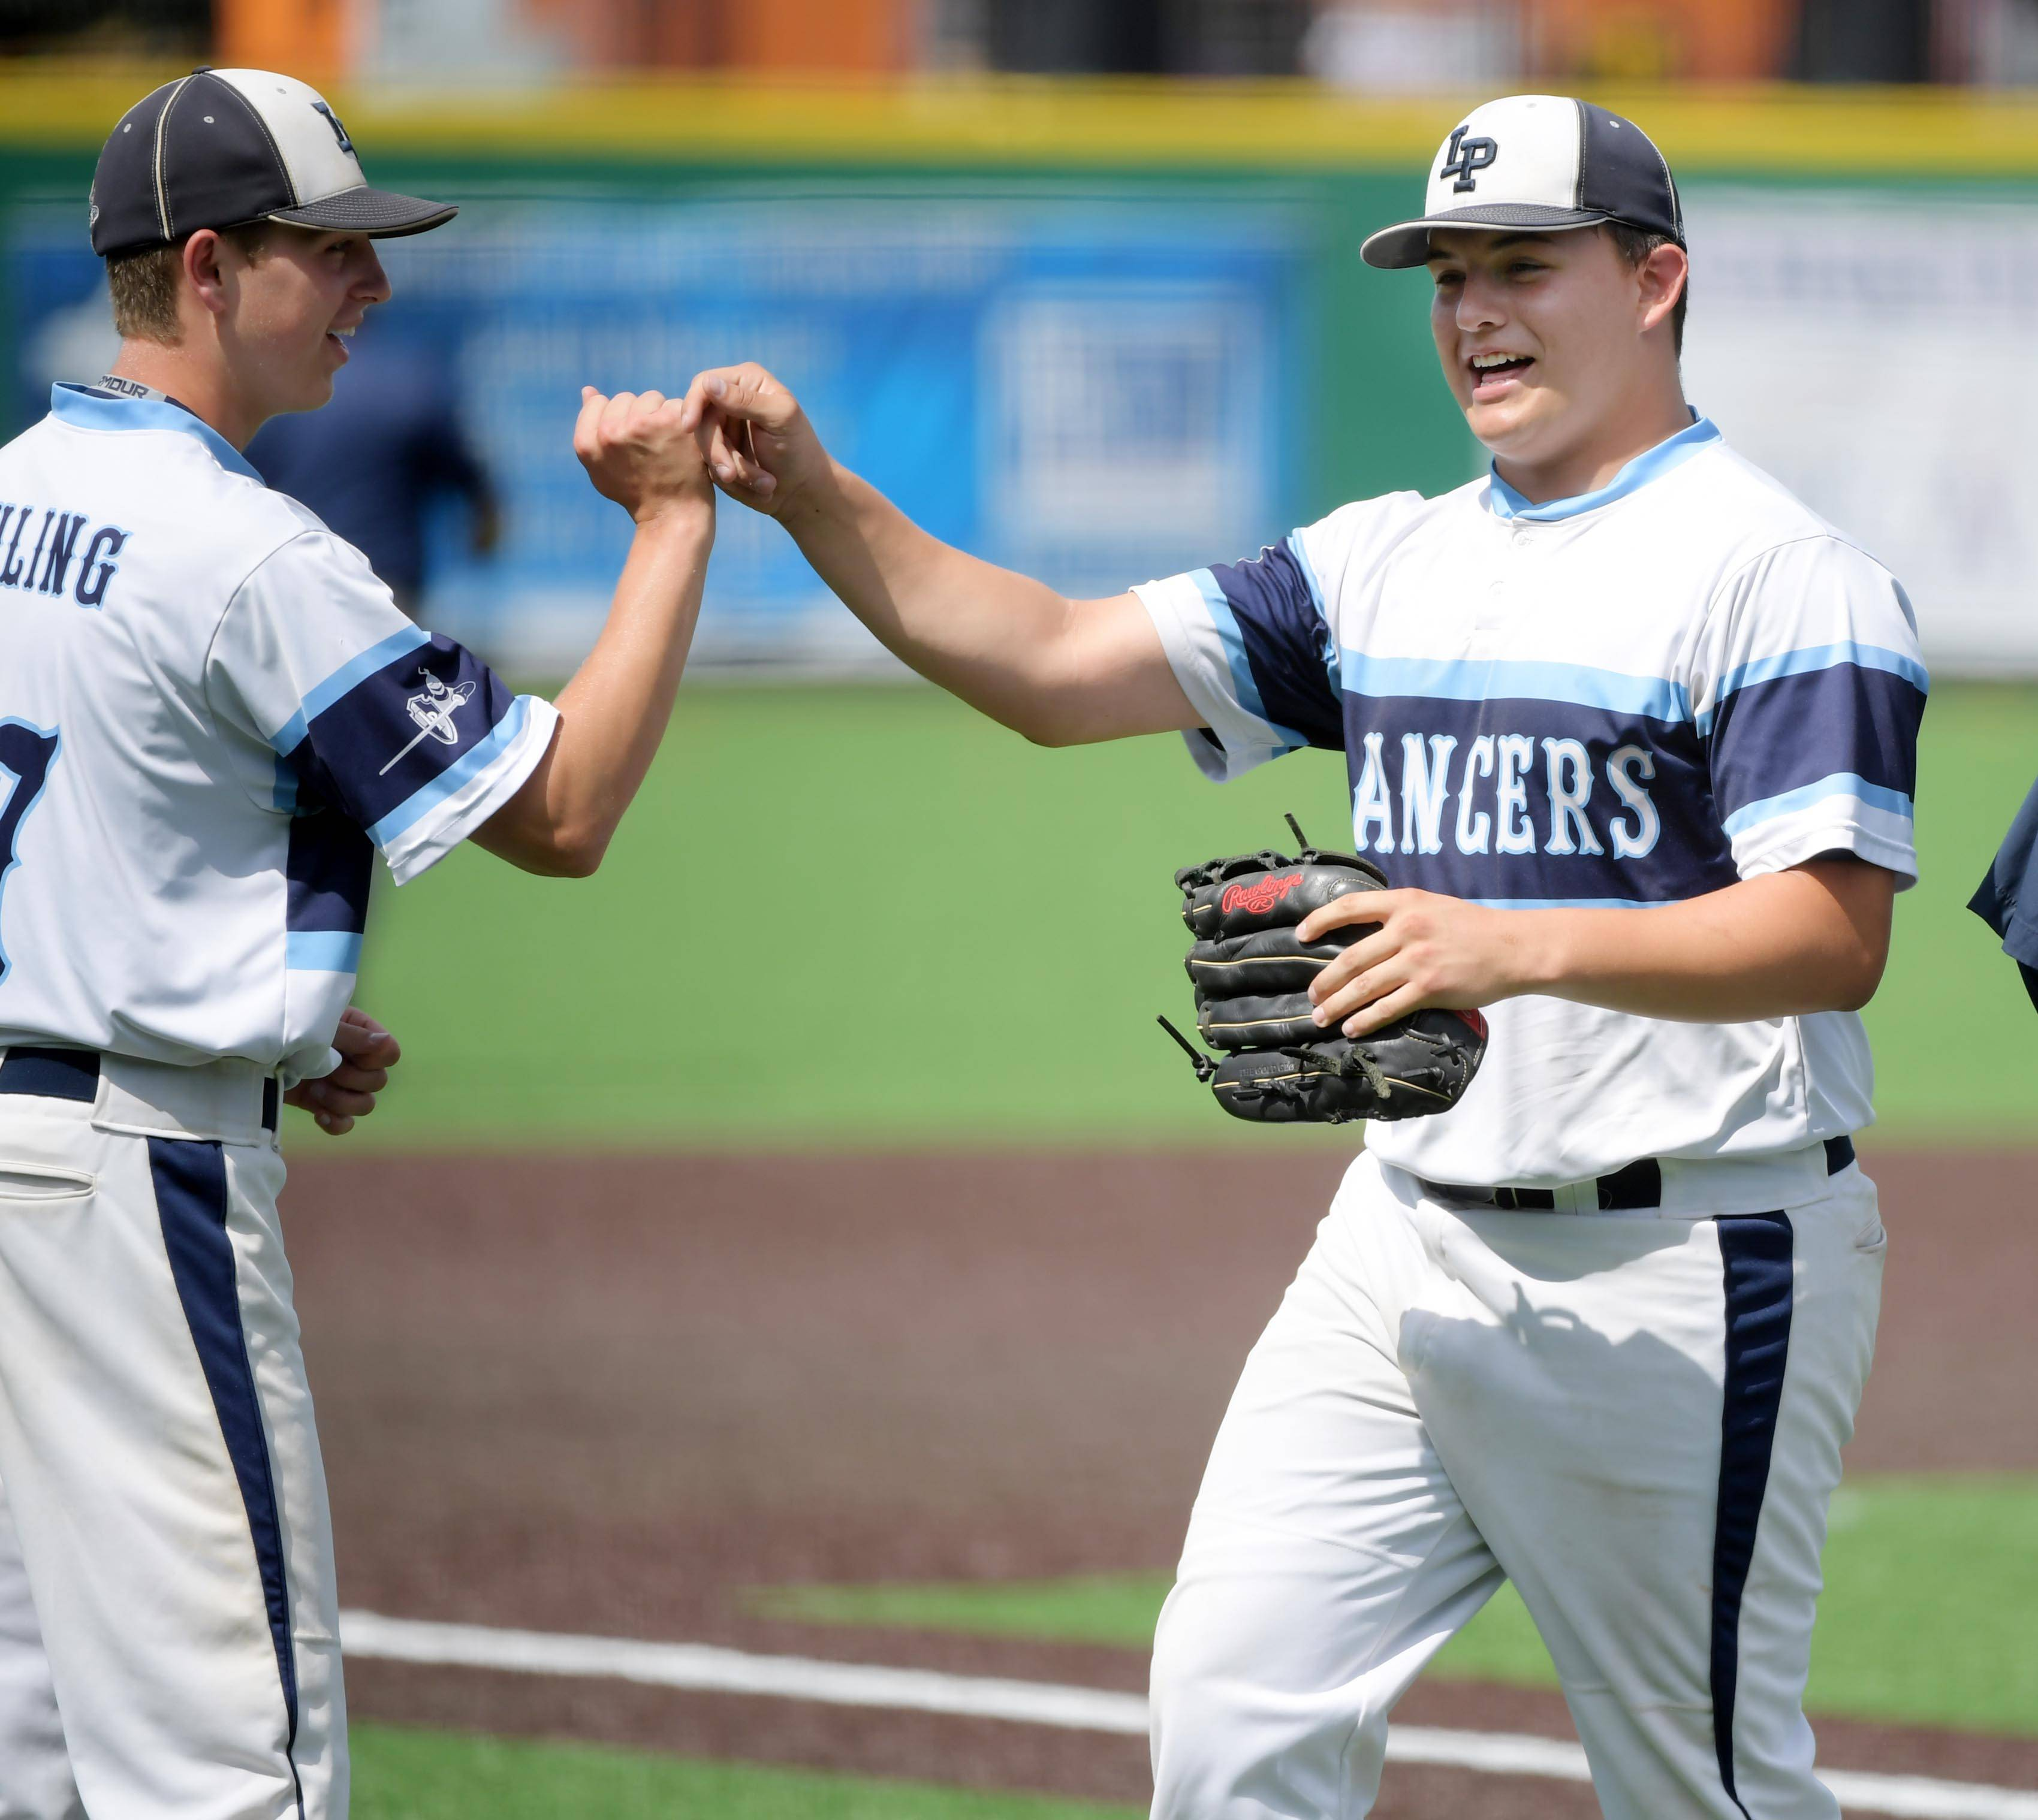 Lake Park pitcher Jay Palmer comes off the field after the first inning against Sandburg in the Class 4A state baseball third place game at Route 66 Stadium in Joliet Saturday.